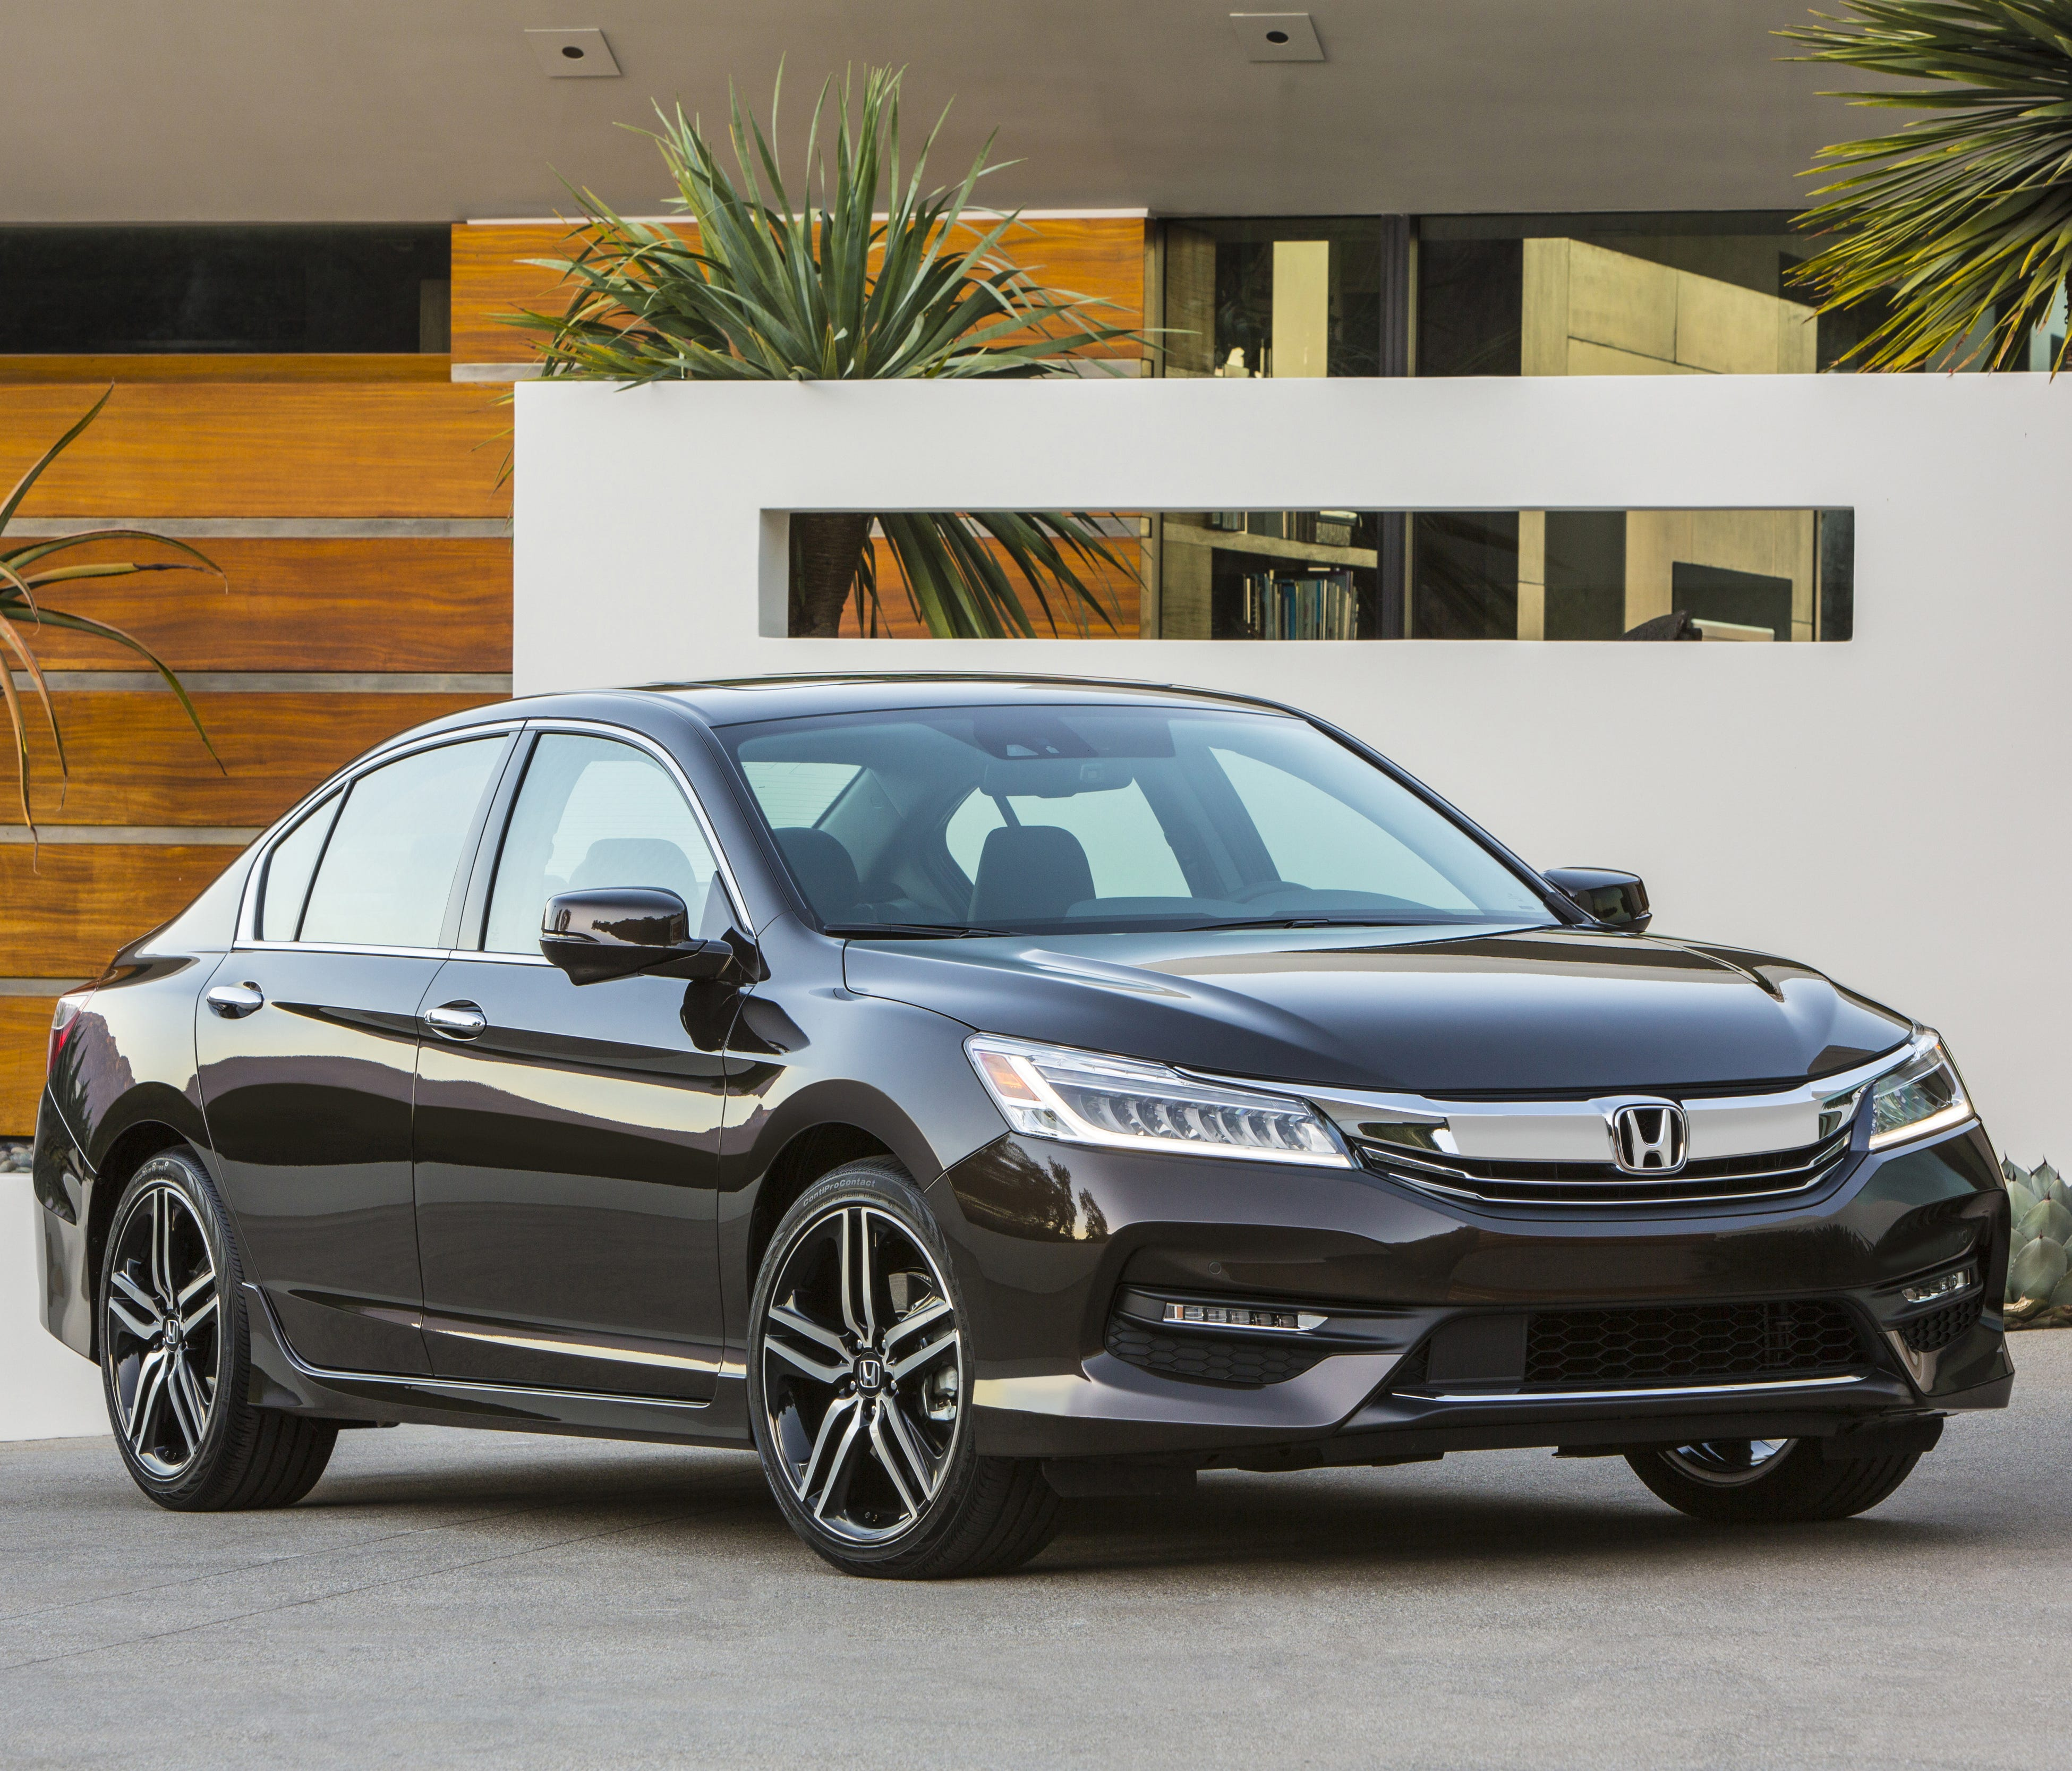 2016 Honda Accord is one of the country's most popular sedans